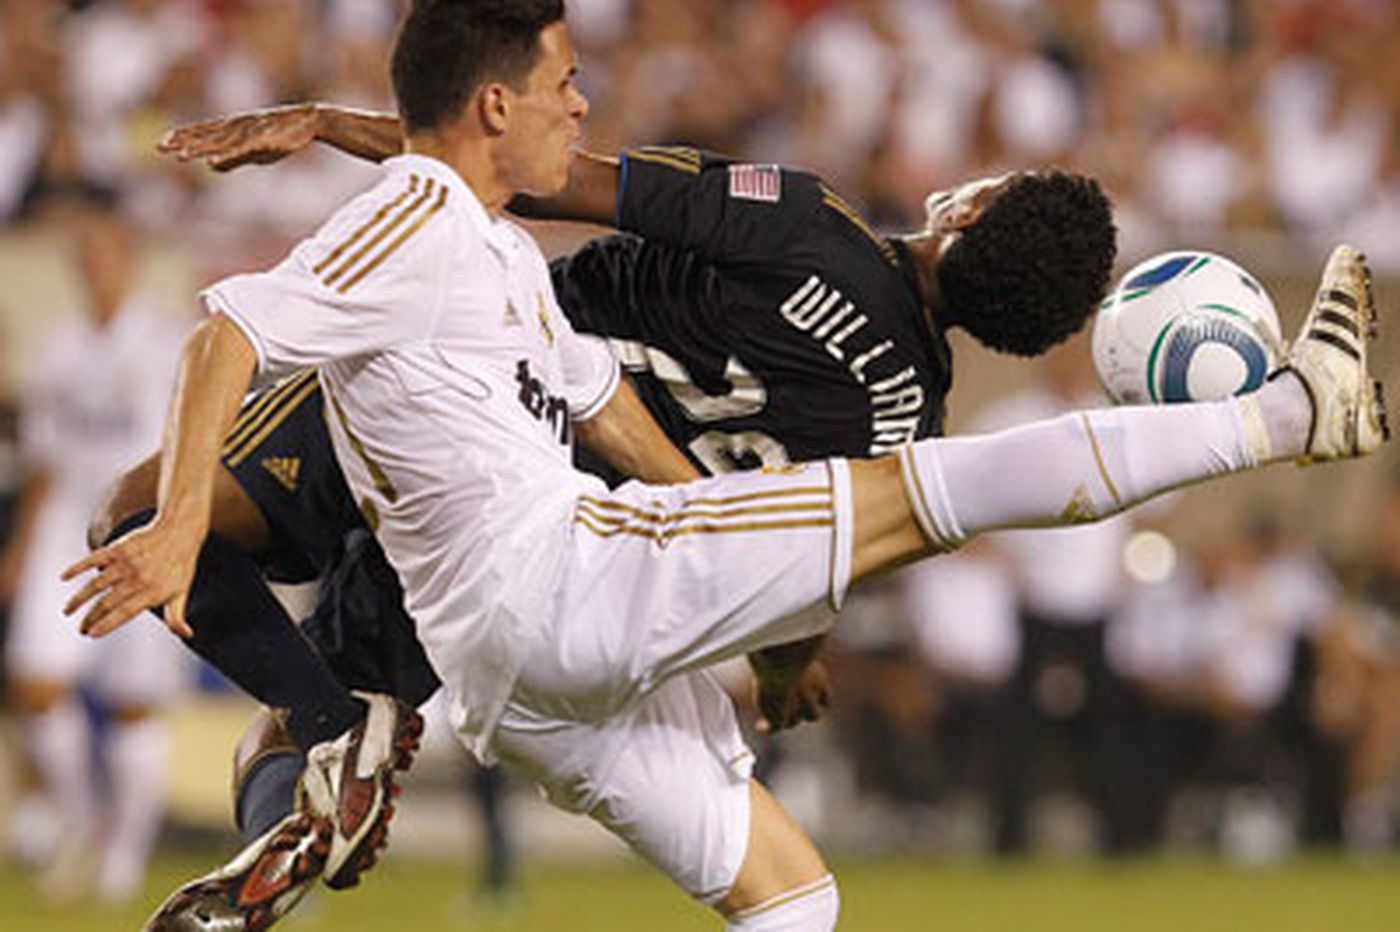 Could Philly host another World Football Challenge match?